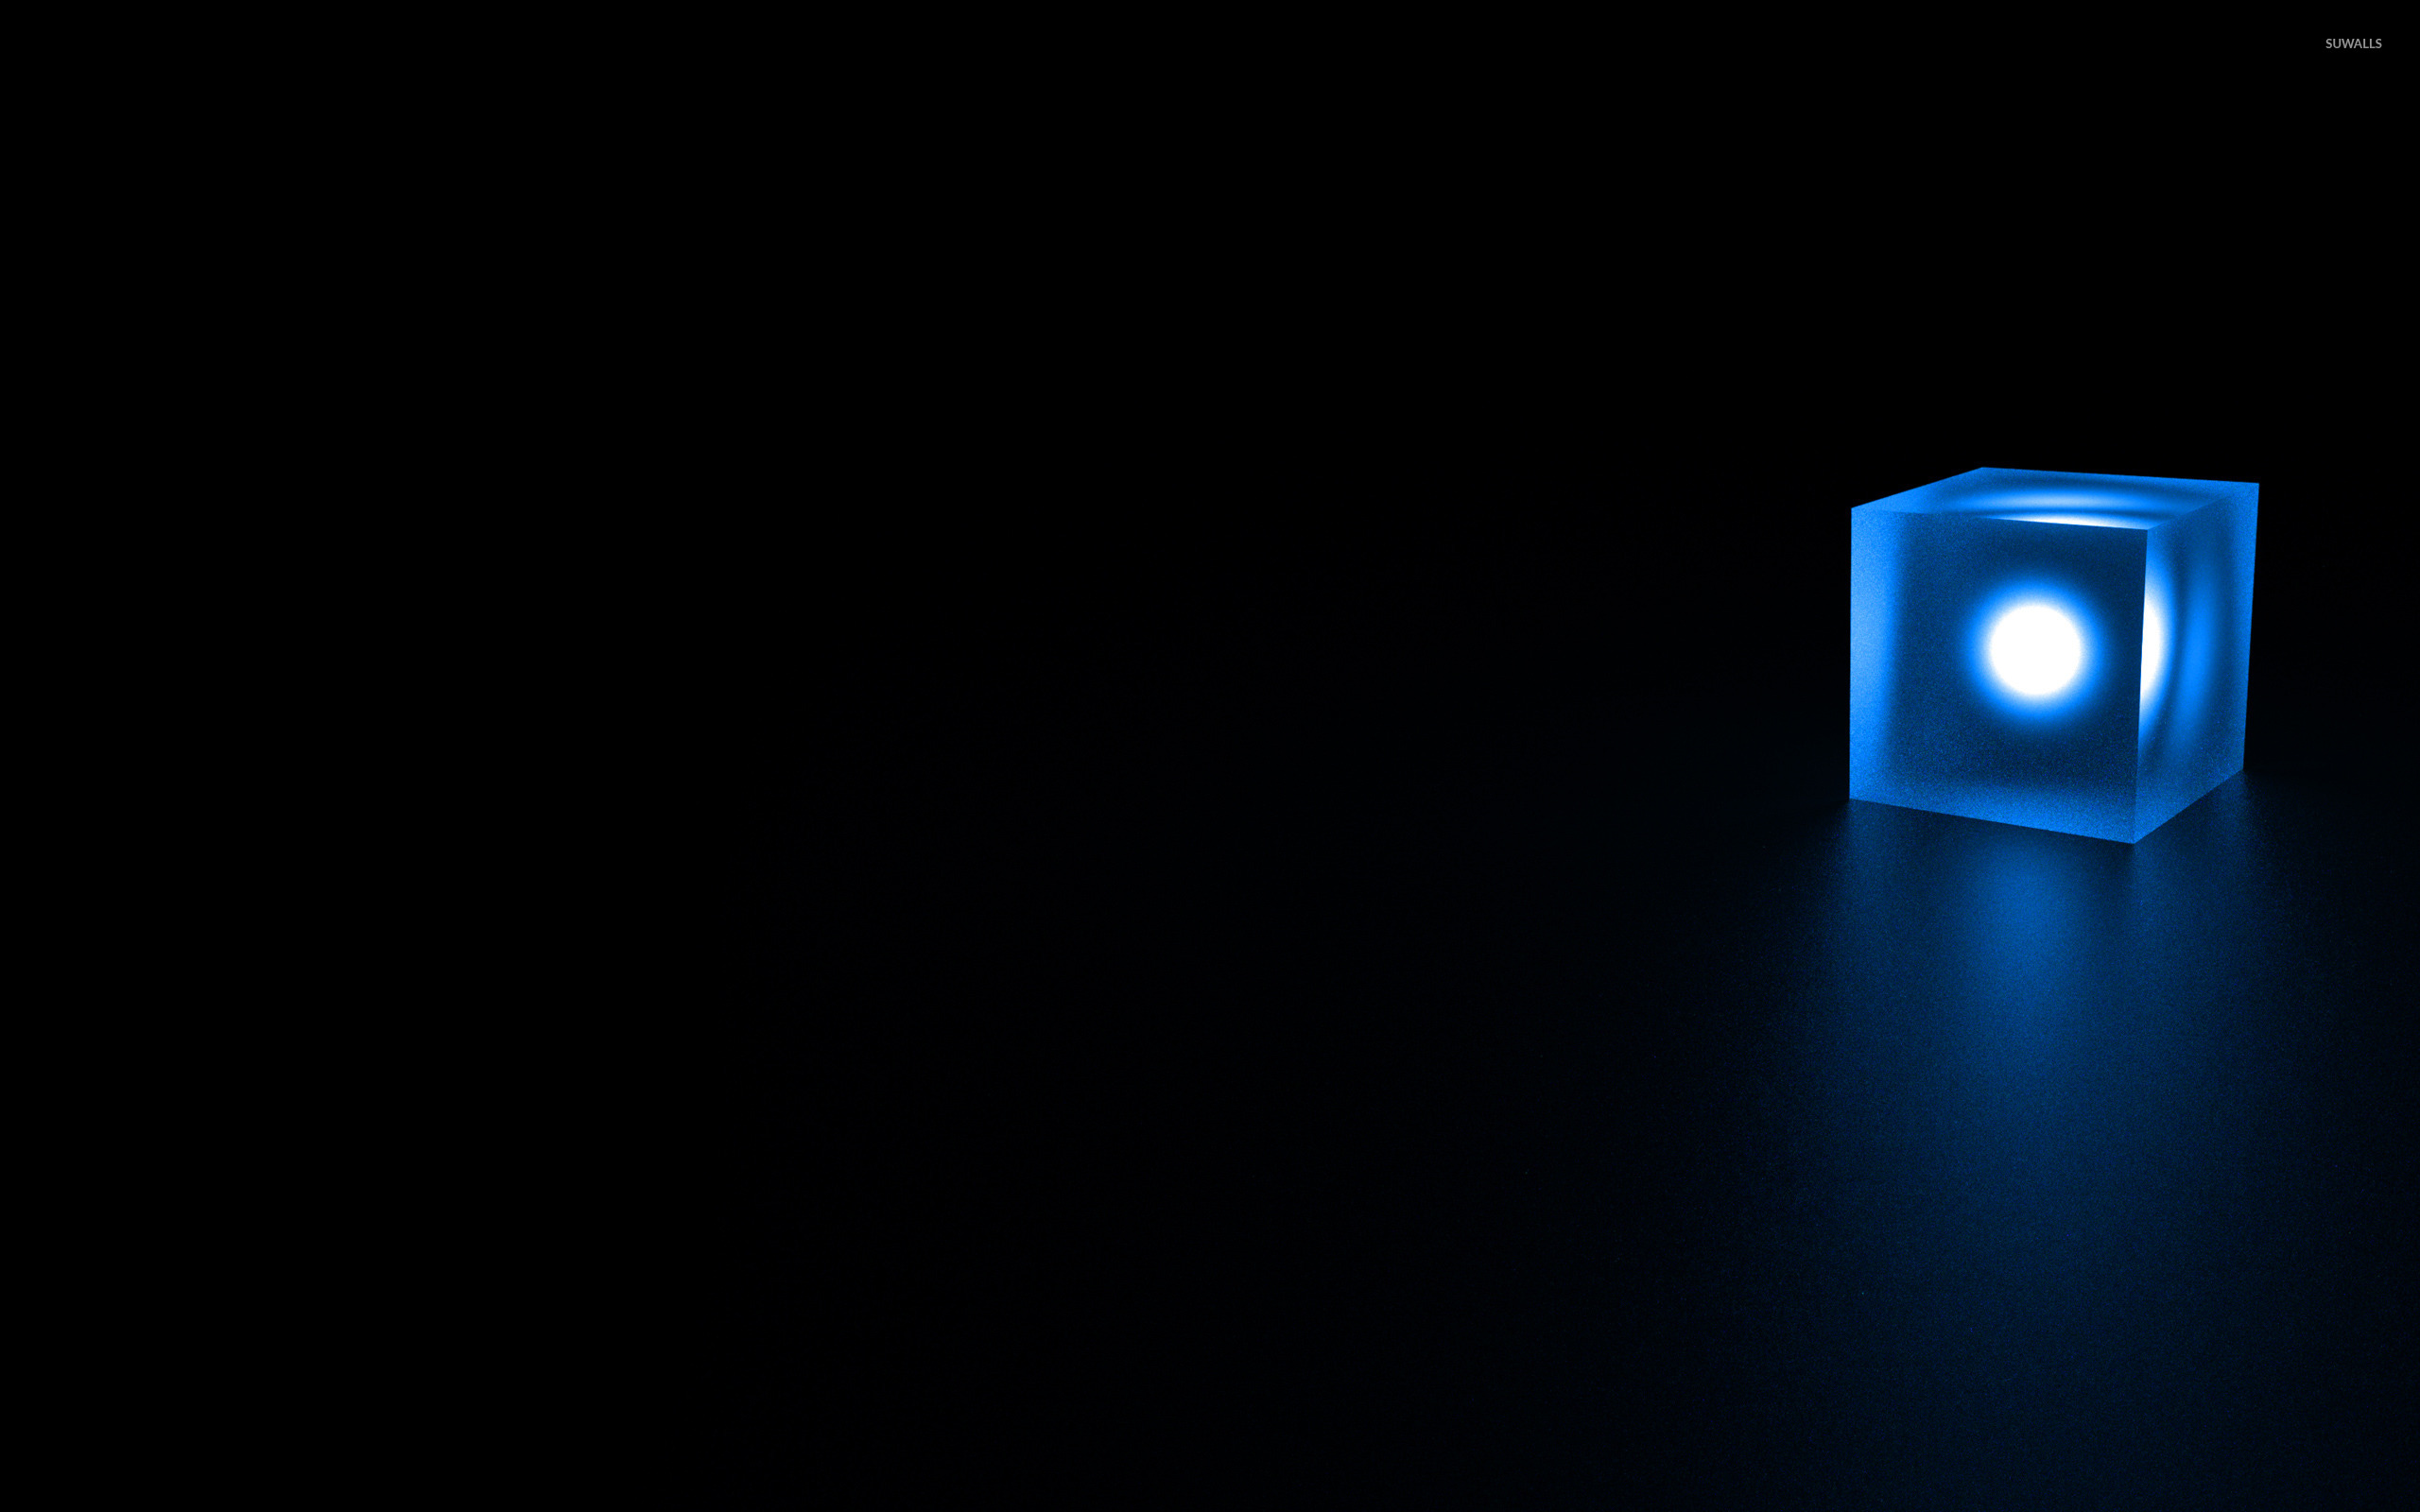 glowing cube wallpaper 3d wallpapers 15699